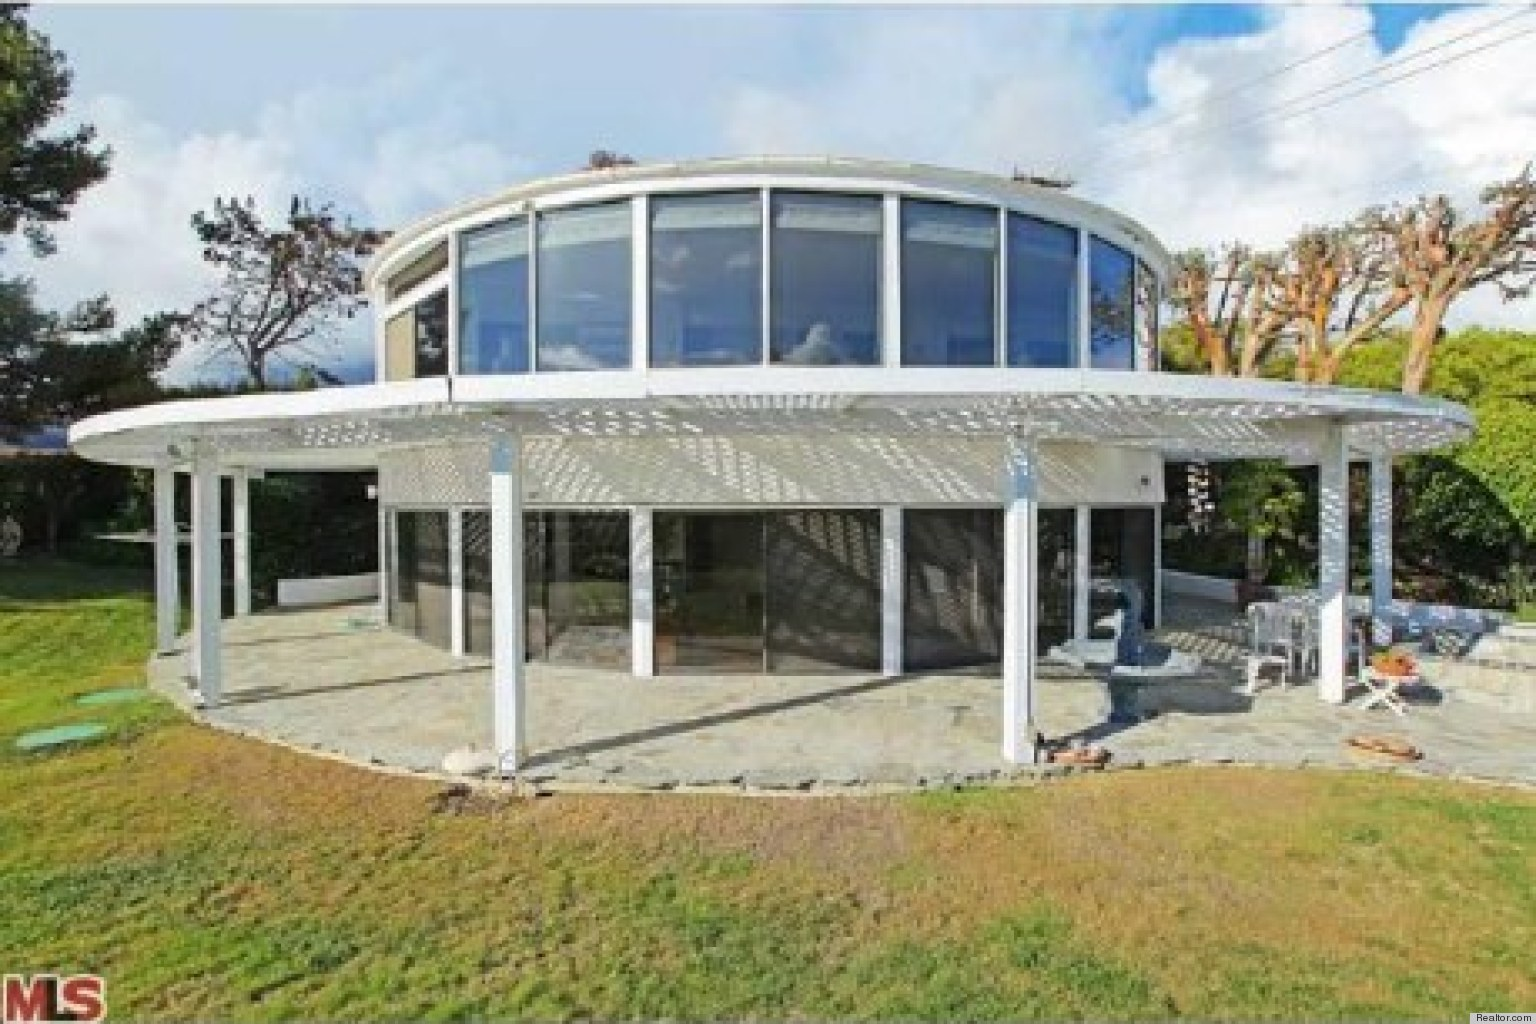 Water Tower Home Malibu Water Tower Home For Sale Is One Of The Coolest Home